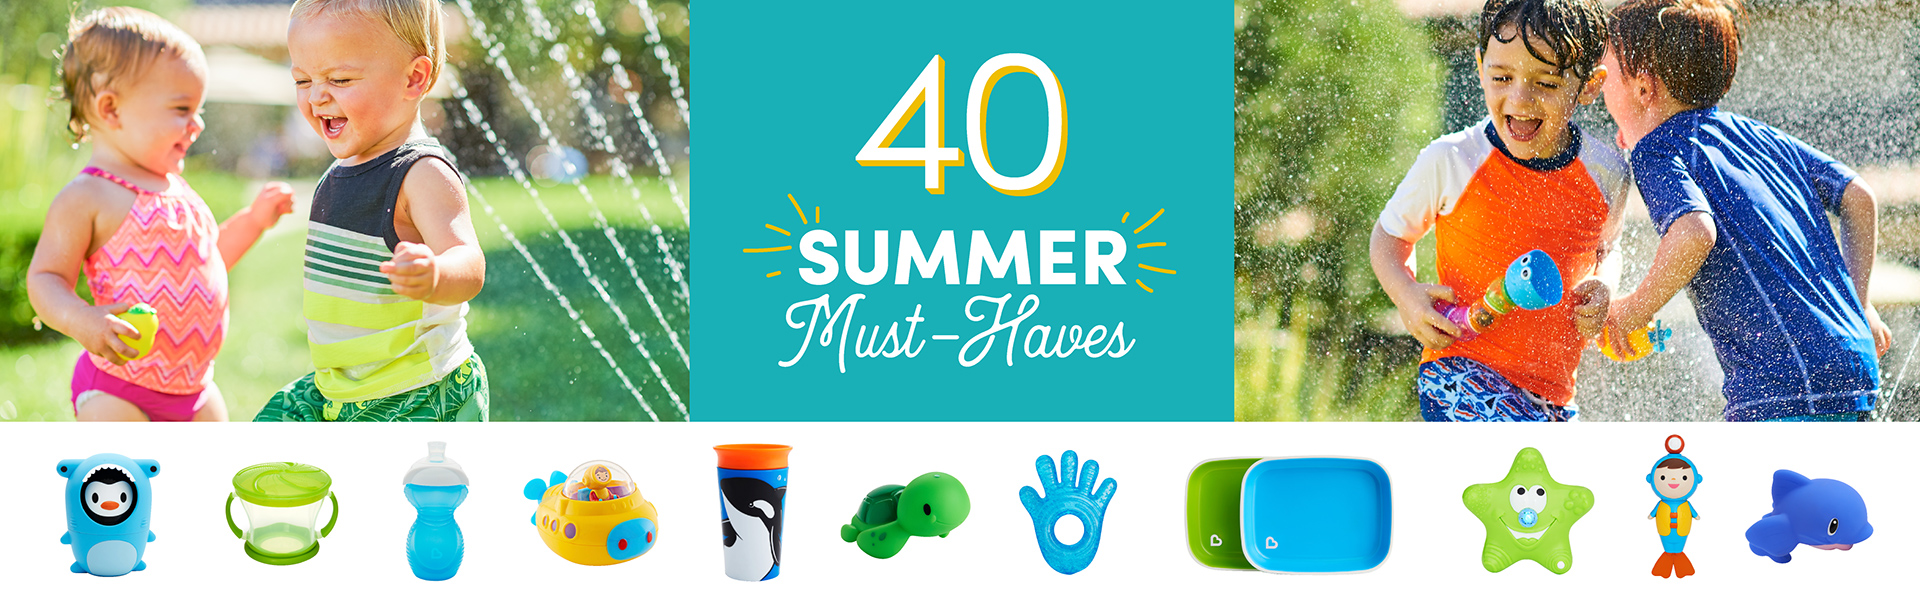 40 Summer Must-Haves